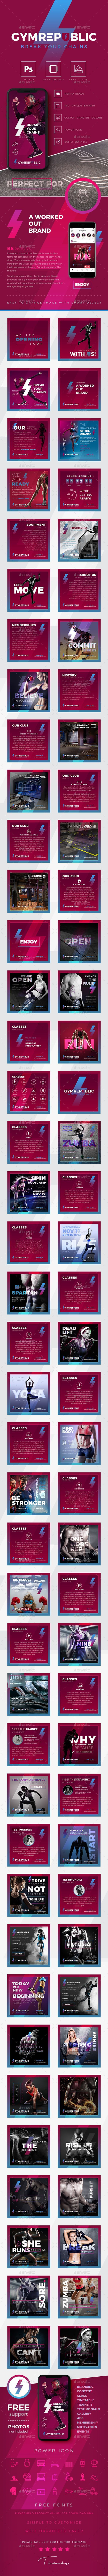 Gymrepublic  Fitness GYM Instagram Banner Templates — Photoshop PSD #social media #gym center • Available here ➝ https://graphicriver.net/item/gymrepublic-fitness-gym-instagram-banner-templates/20687397?ref=pxcr